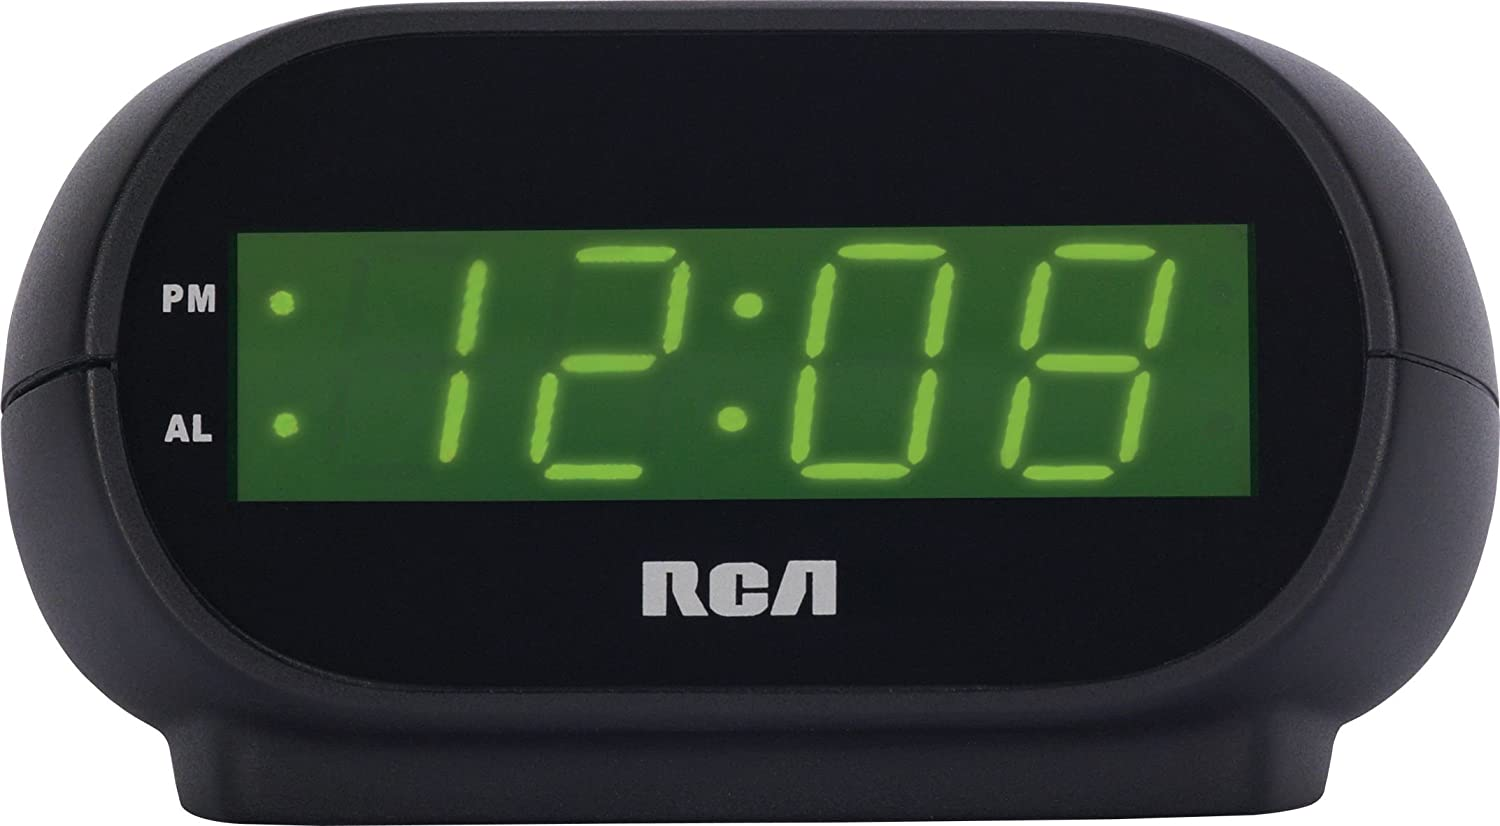 RCA Digital Alarm Clock (RCA Digital Alarm Clock with Night Light)